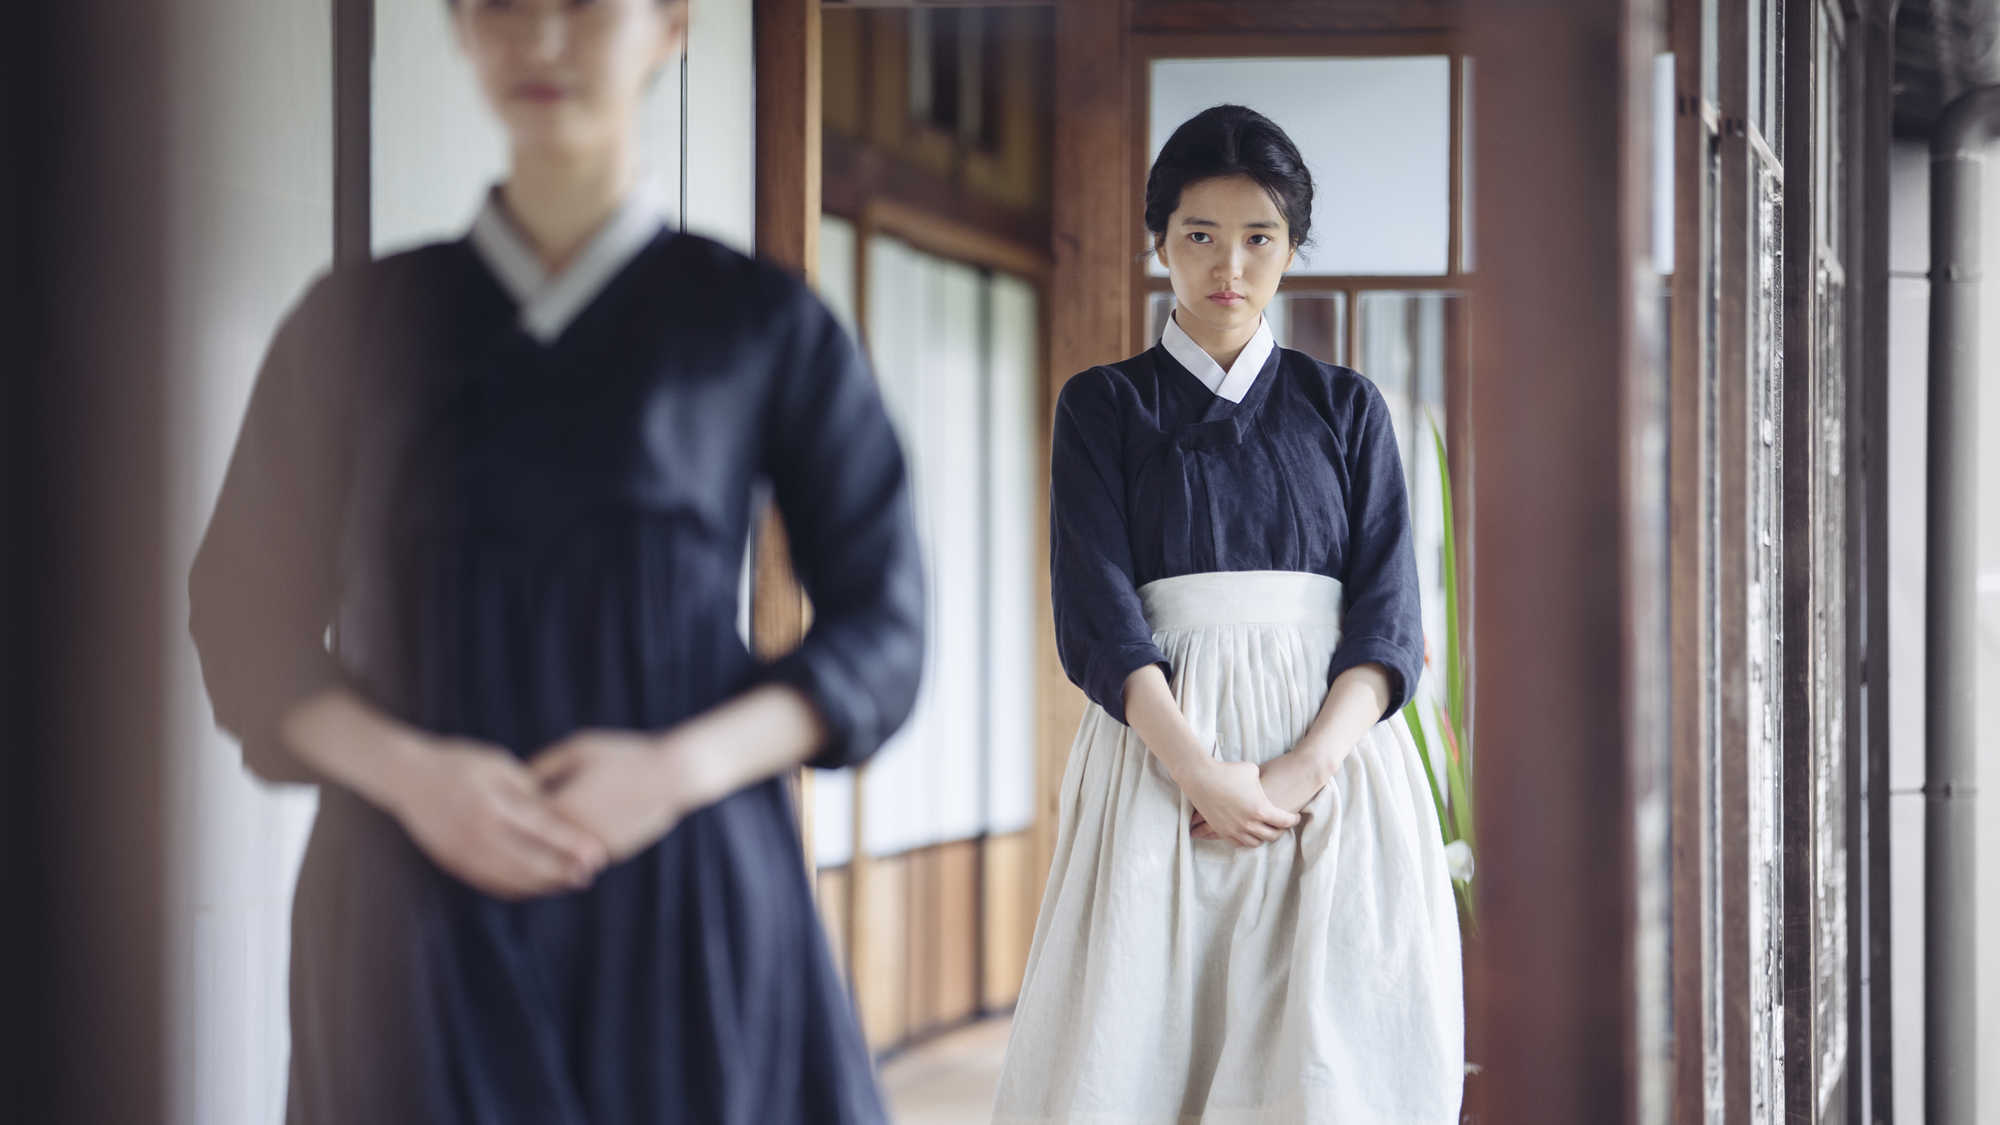 The Handmaiden (image 4)